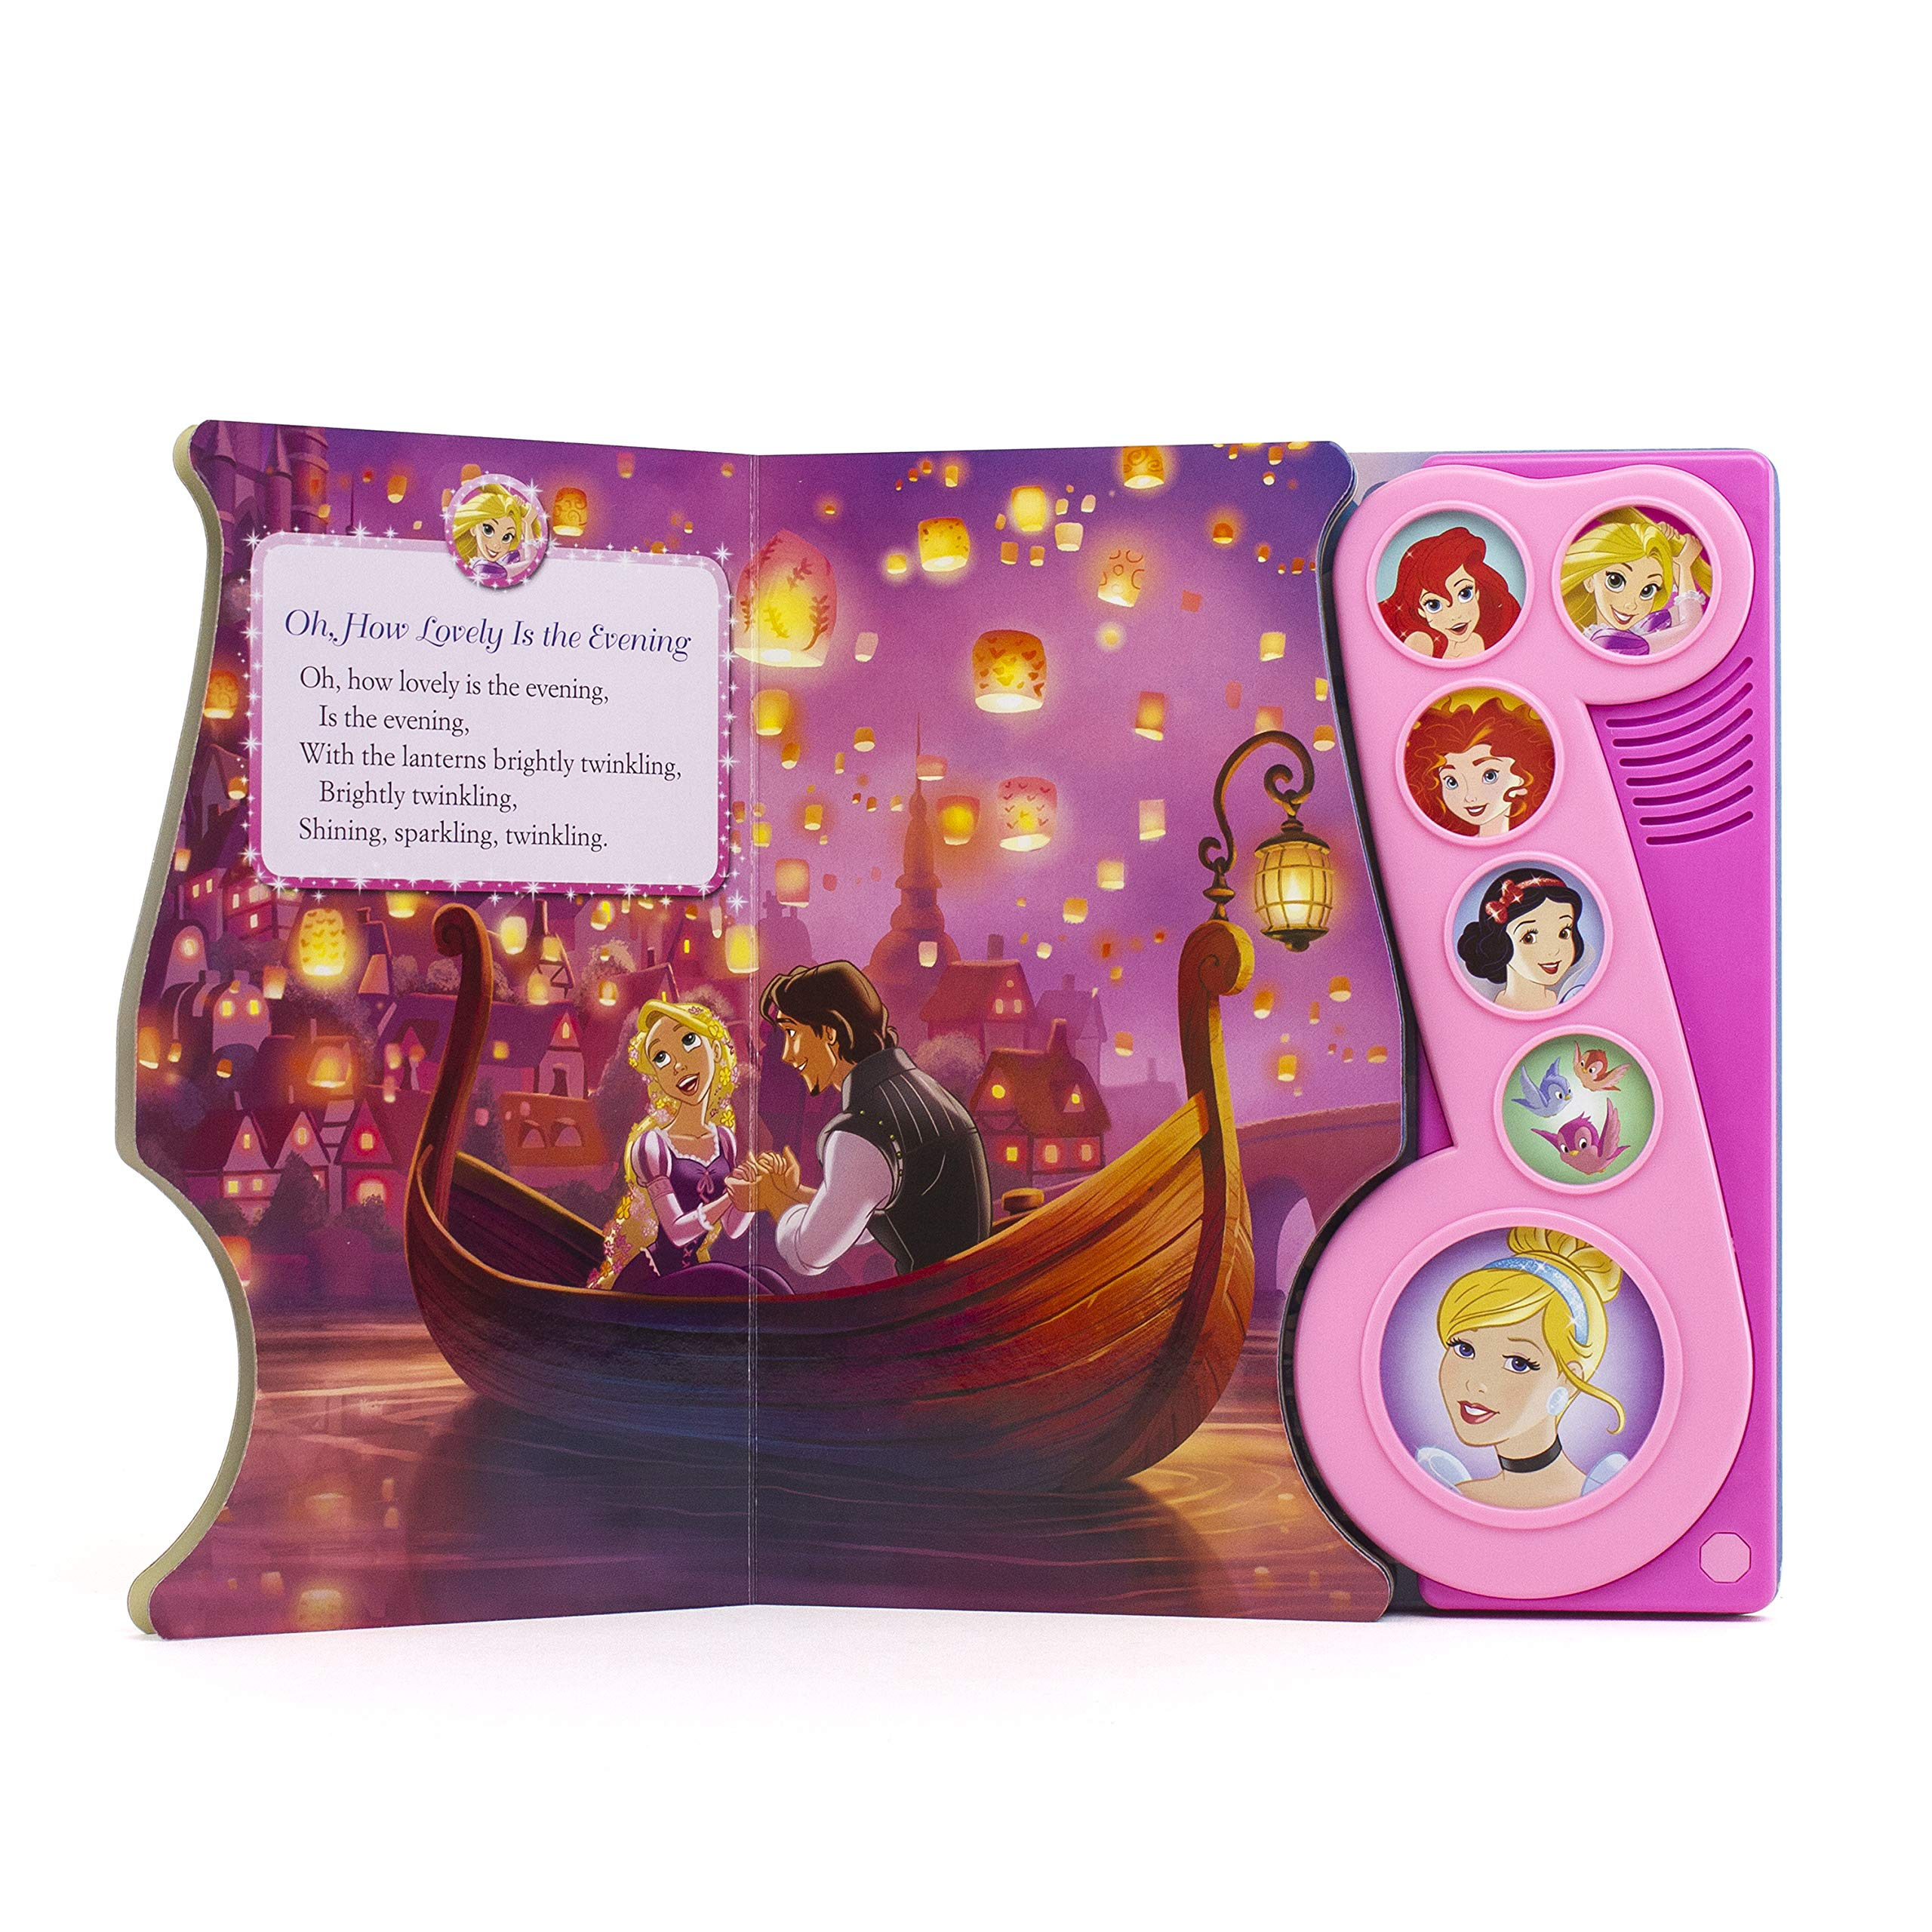 319252a4435c Disney Princess - Once Upon a Time Little Music Note - Play-a-Song - PI  Kids  PiKids